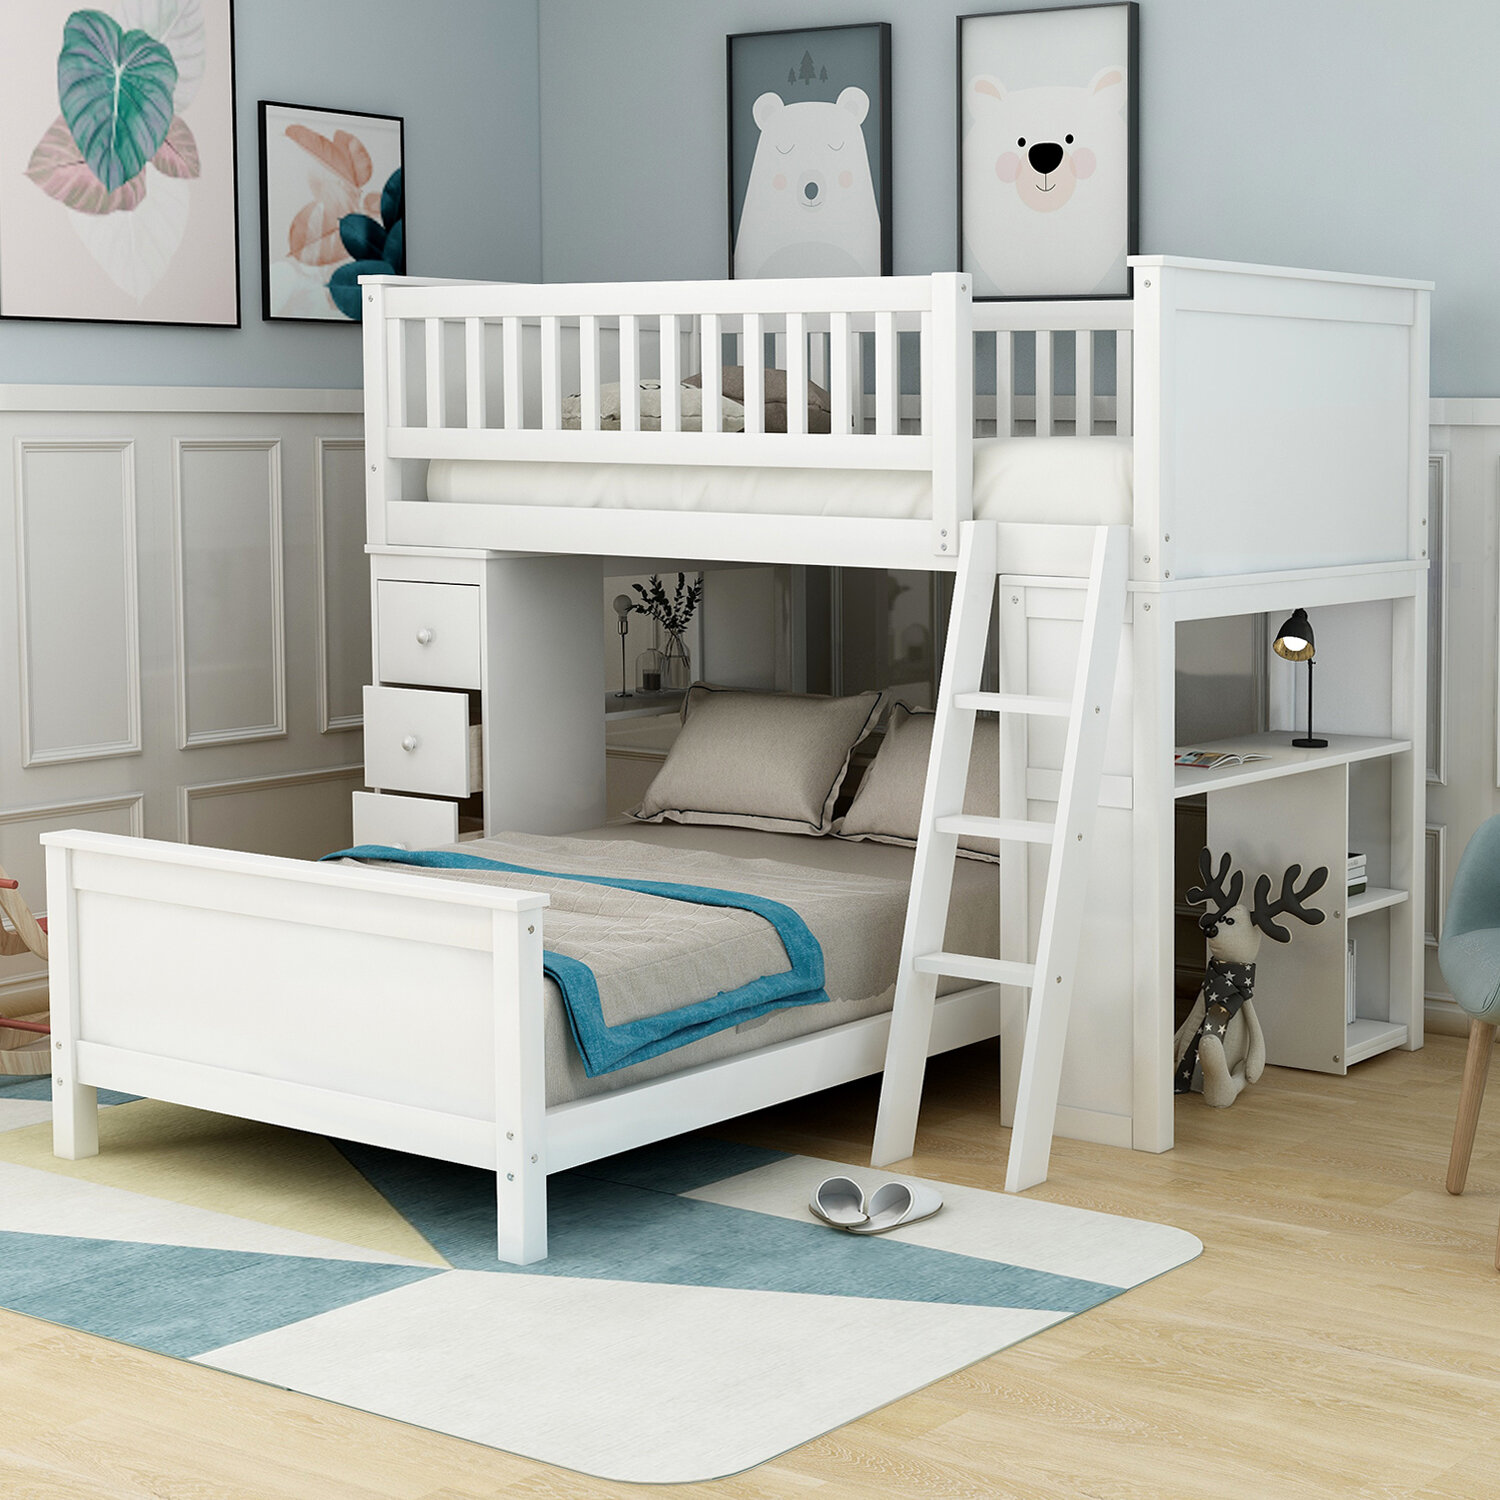 Harriet Bee Henri Twin Over Twin L Shaped Bunk Beds With 4 Drawers Reviews Wayfair